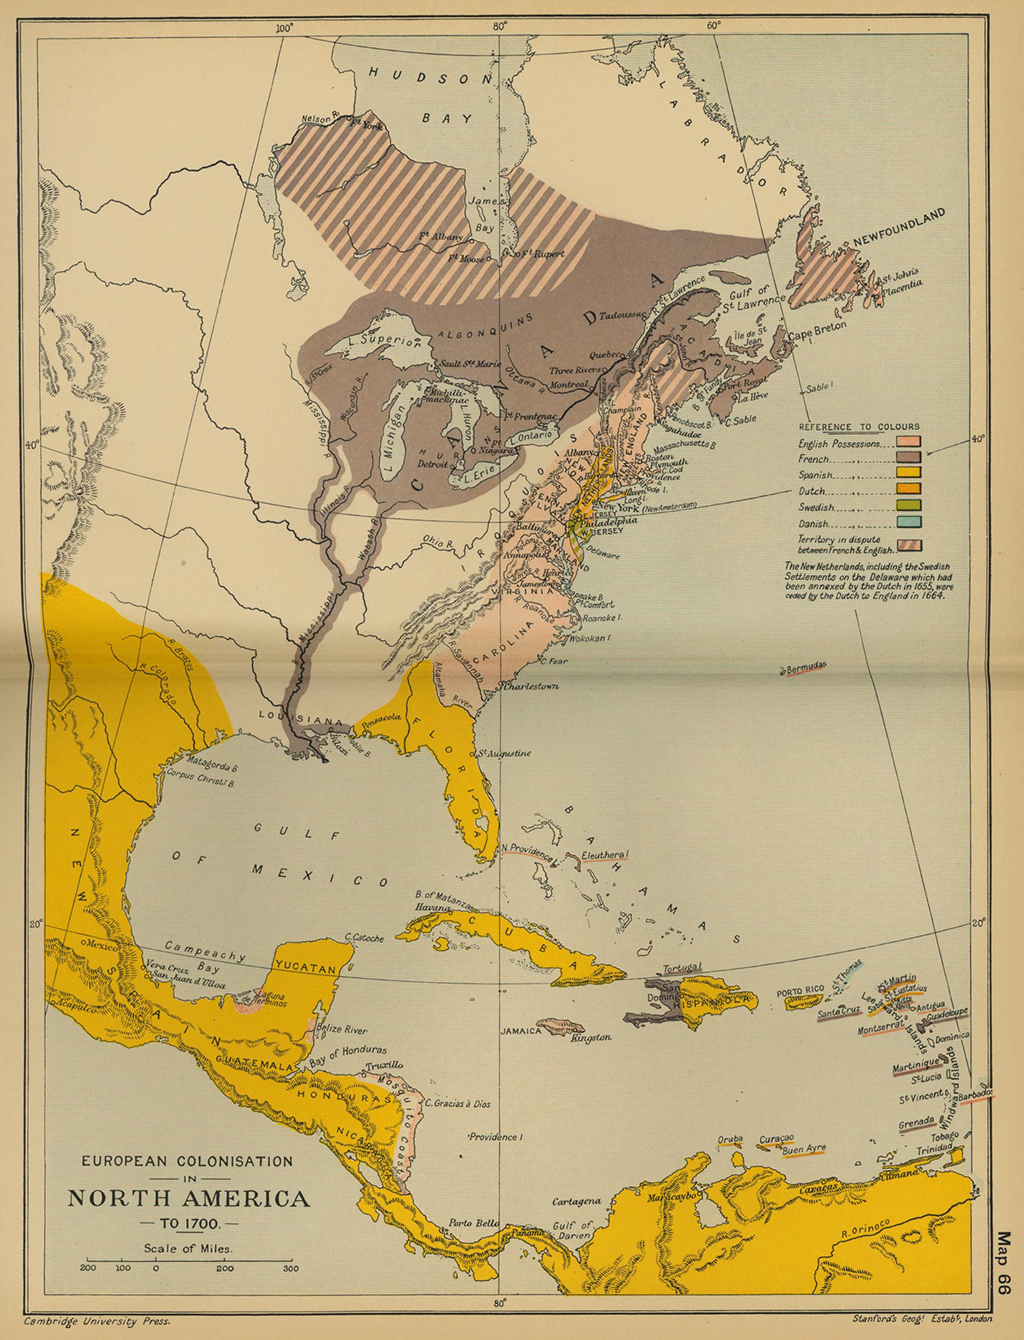 The map of European colonization of North America as of 1700